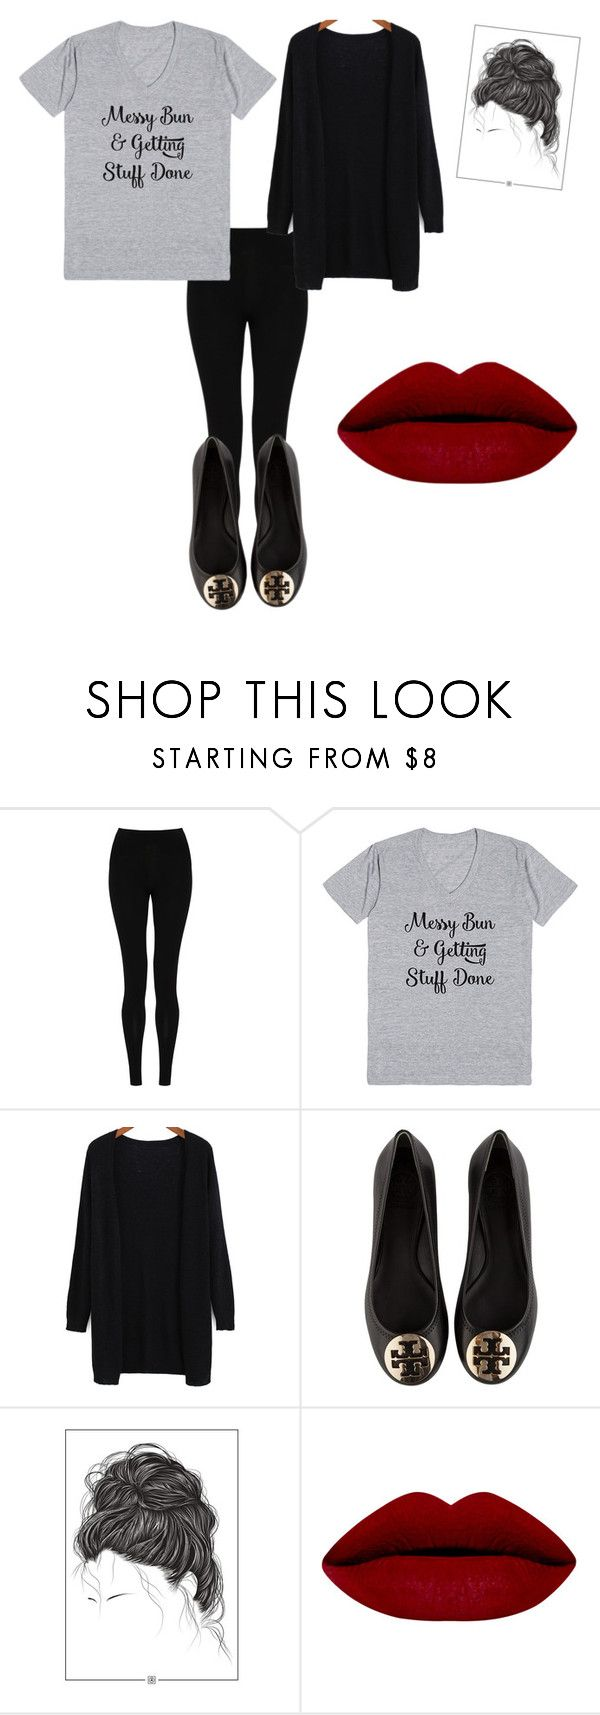 """Getting Stuff Done"" by everythingfashion ❤ liked on Polyvore featuring mode, M&S Collection, Tory Burch, women's clothing, women's fashion, women, female, woman, misses en juniors"